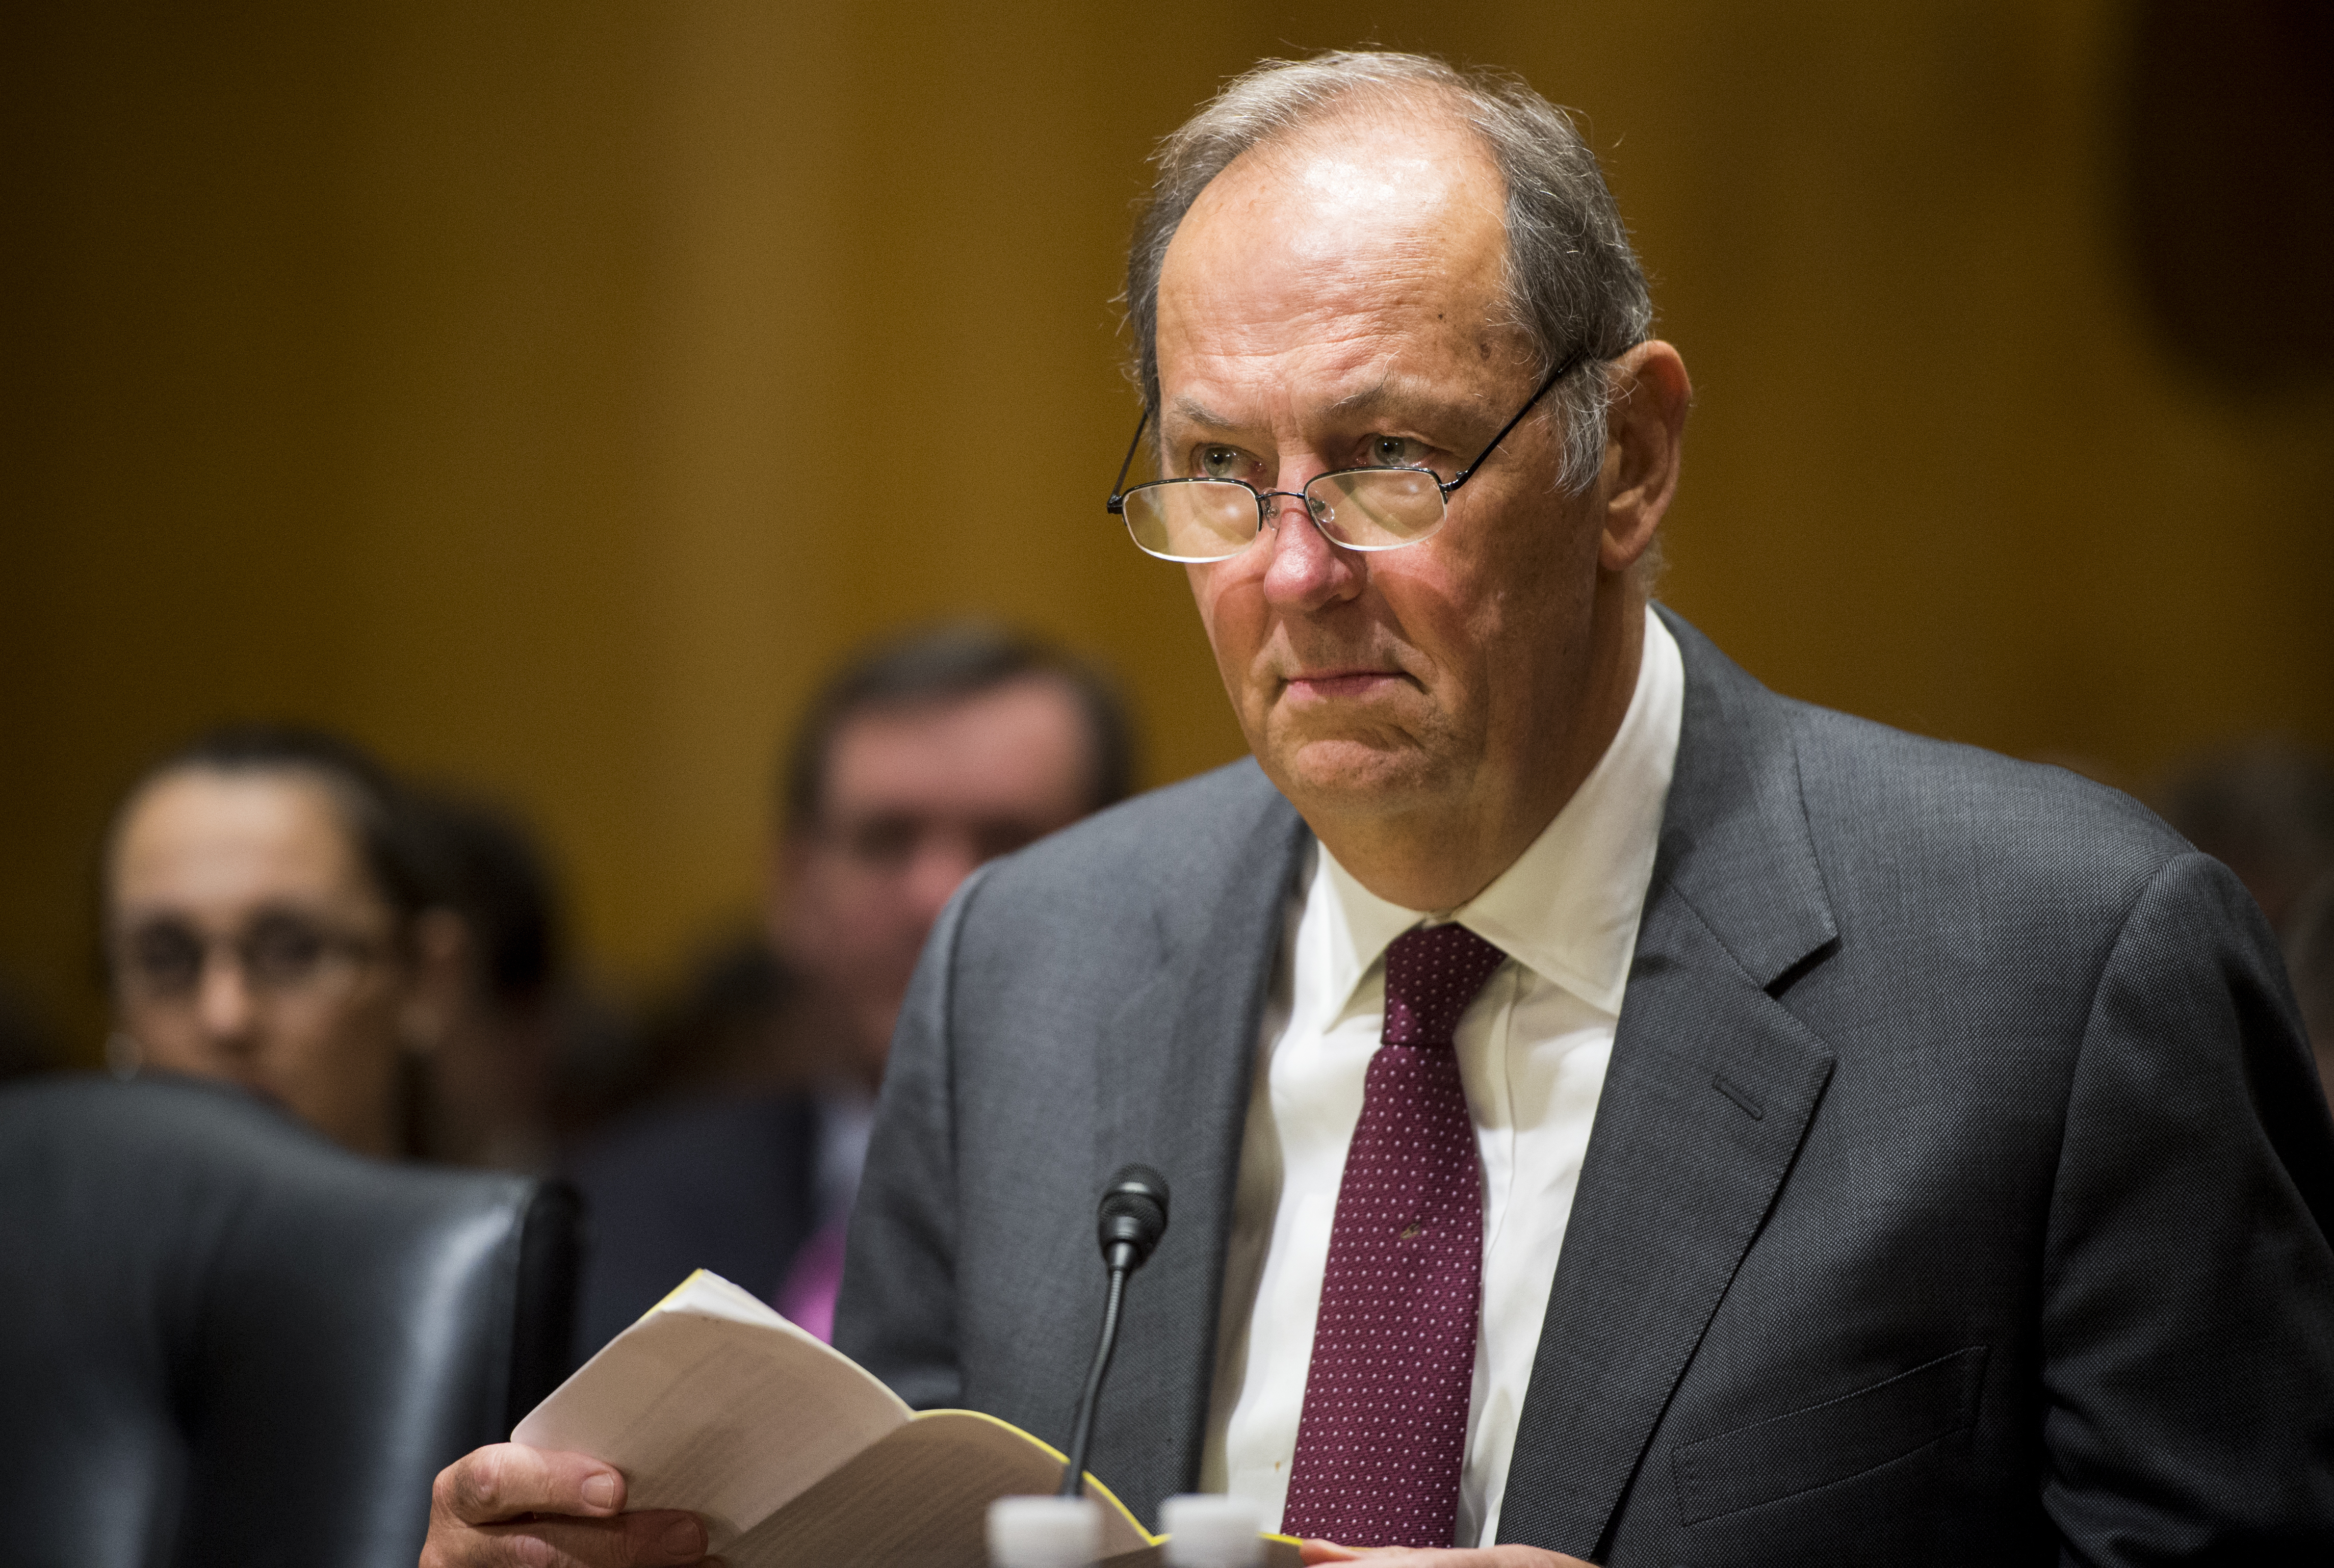 Former Sen. Bill Bradley, D-N.J., takes his seat for the Senate Finance Committee hearing on  Getting to Yes on Tax Reform: What Lessons Can Congress Learn from the Tax Reform Act of 1986?  on Tuesday, Feb. 10, 2015.